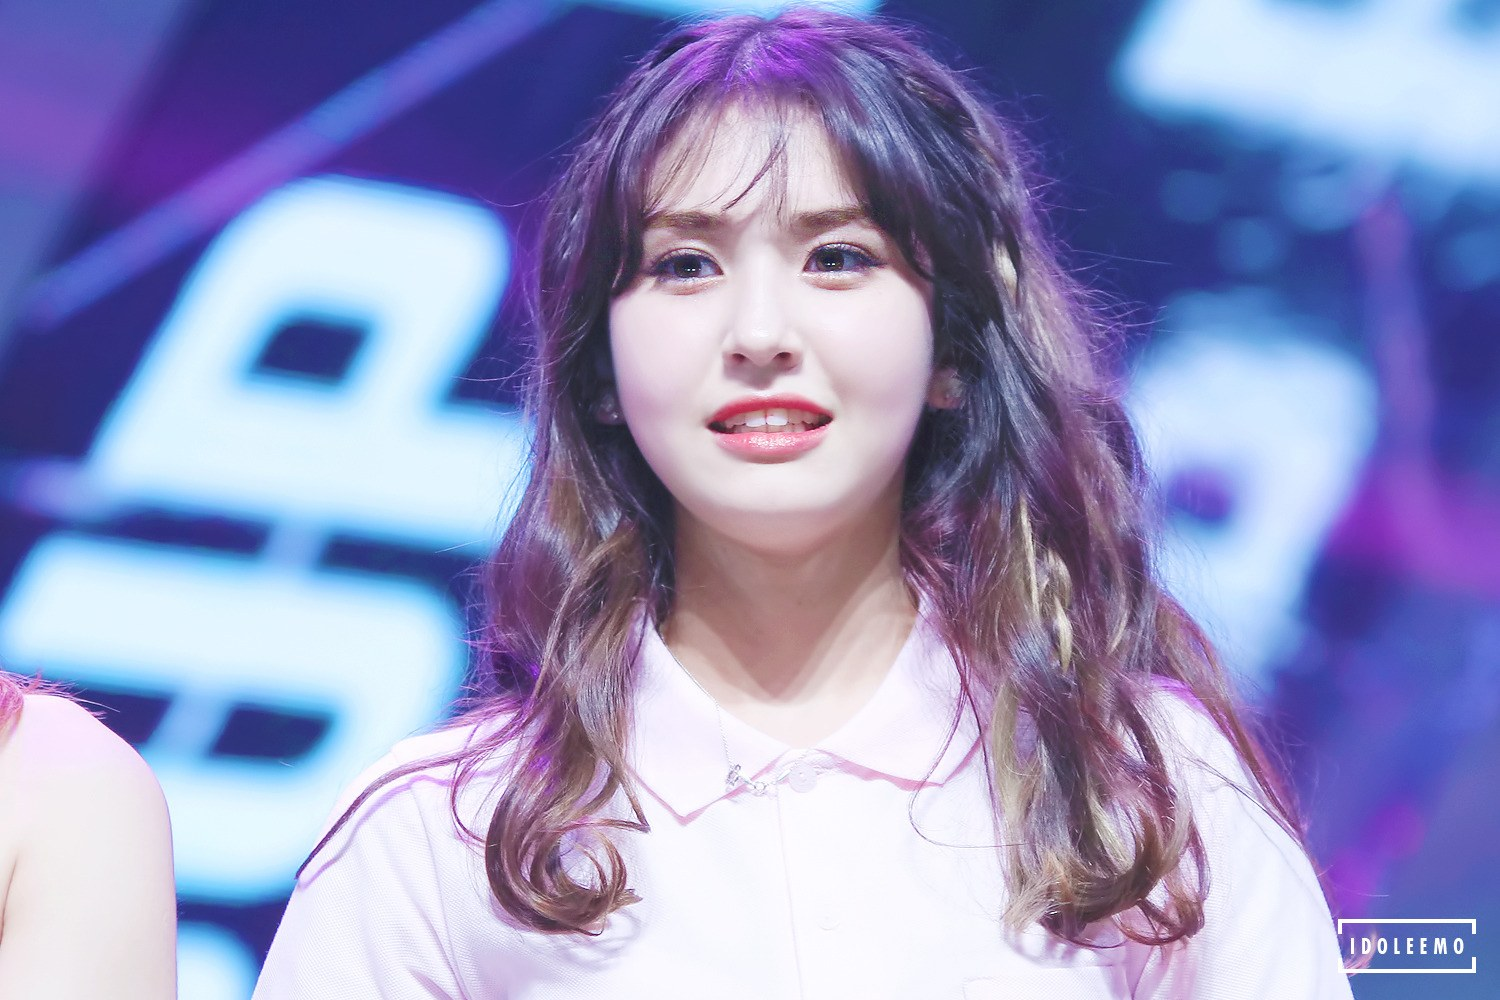 Somi will return to her aegncy not as a trainee, but as an artist.